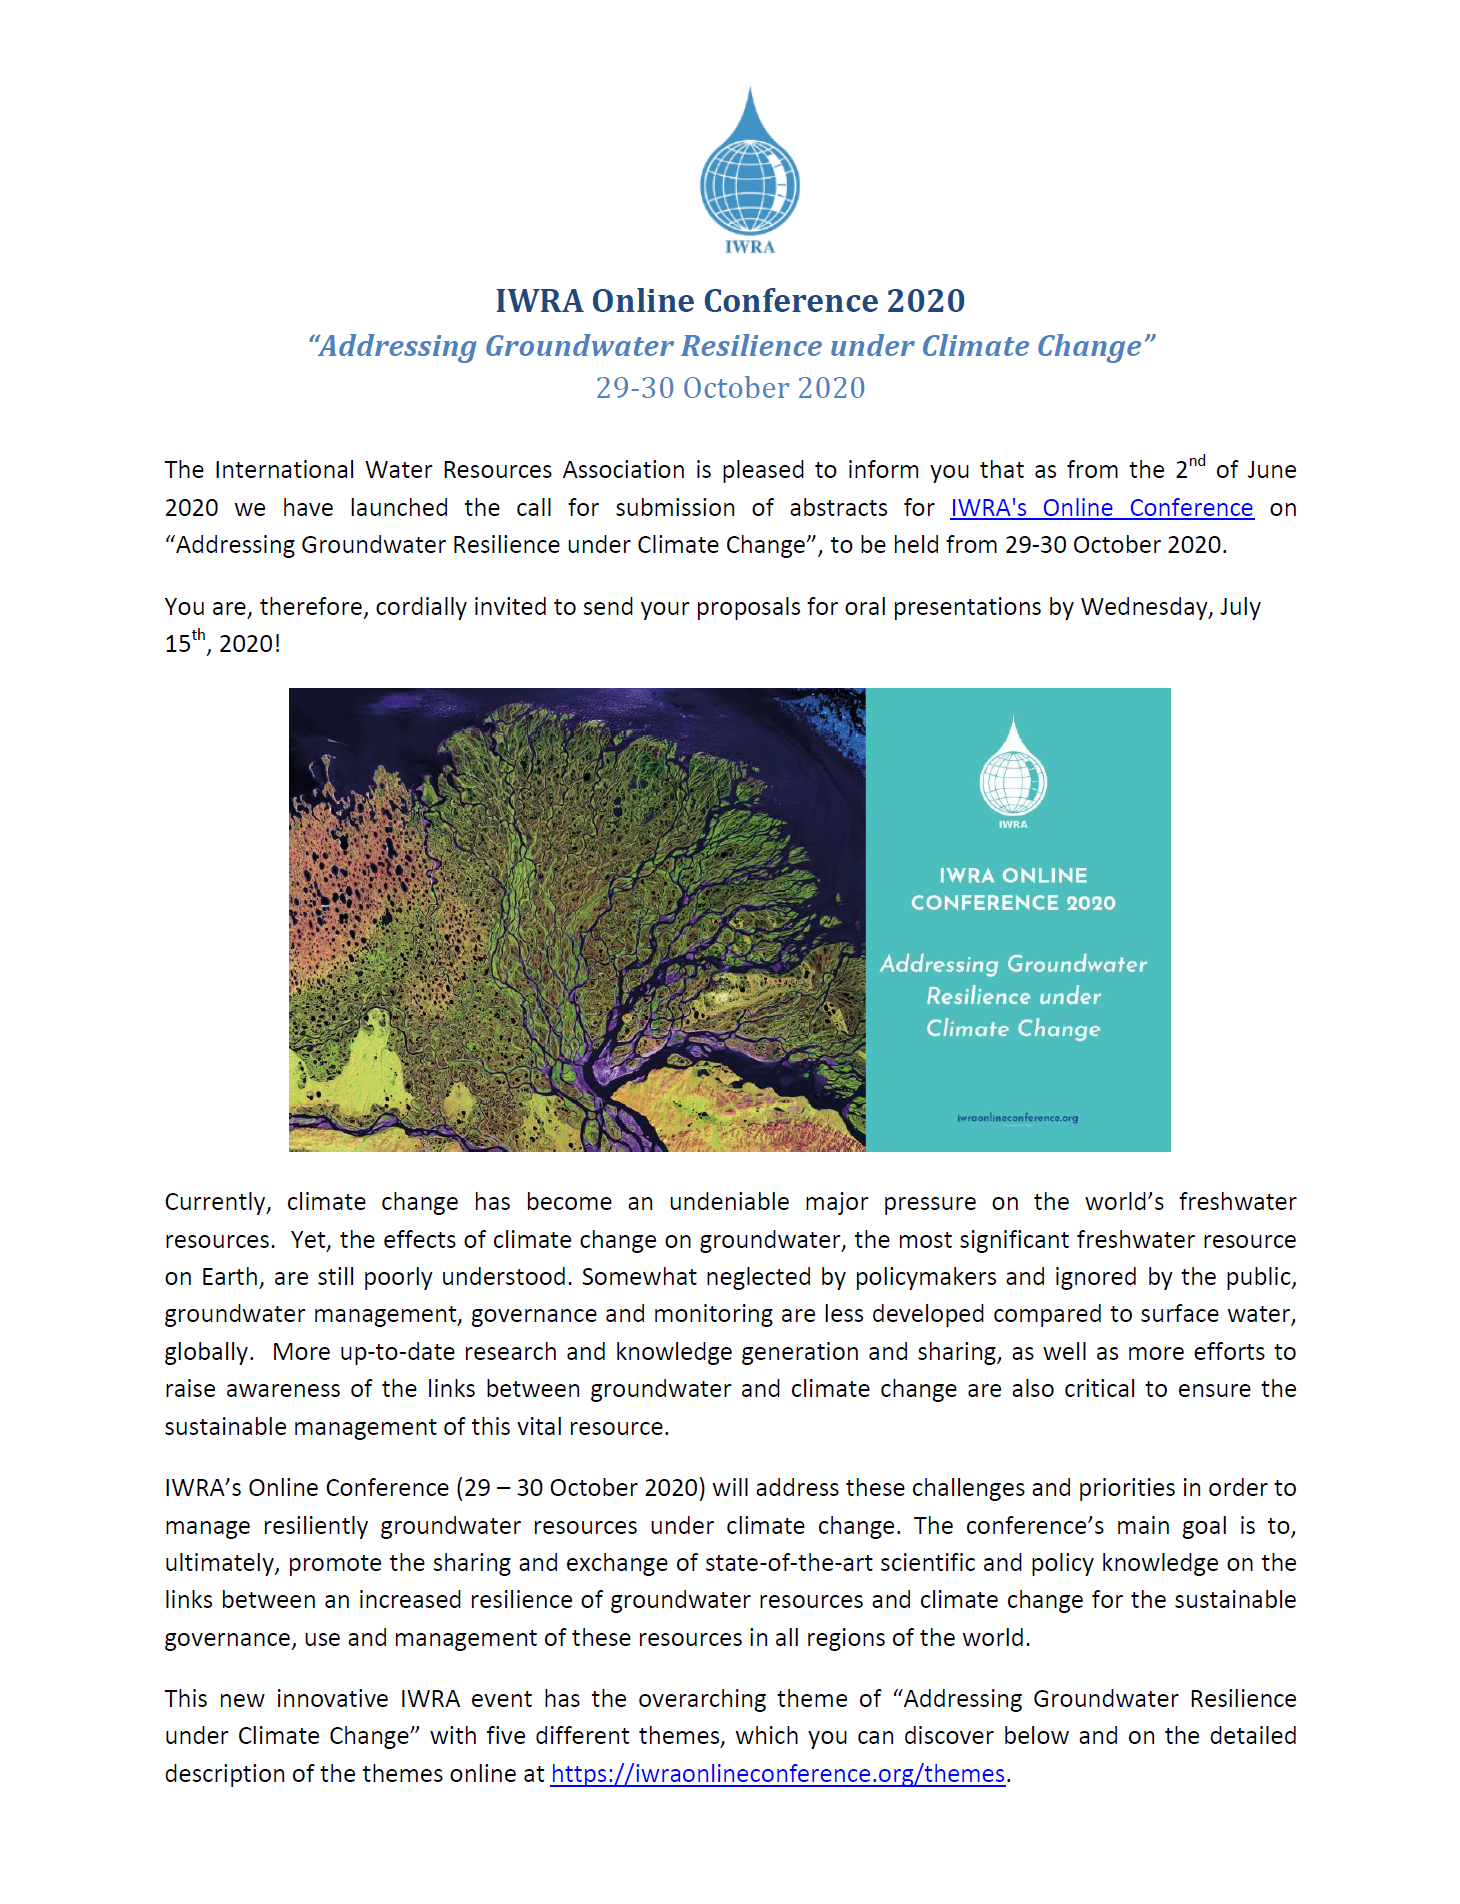 IWRA online conference - Call for abstracts